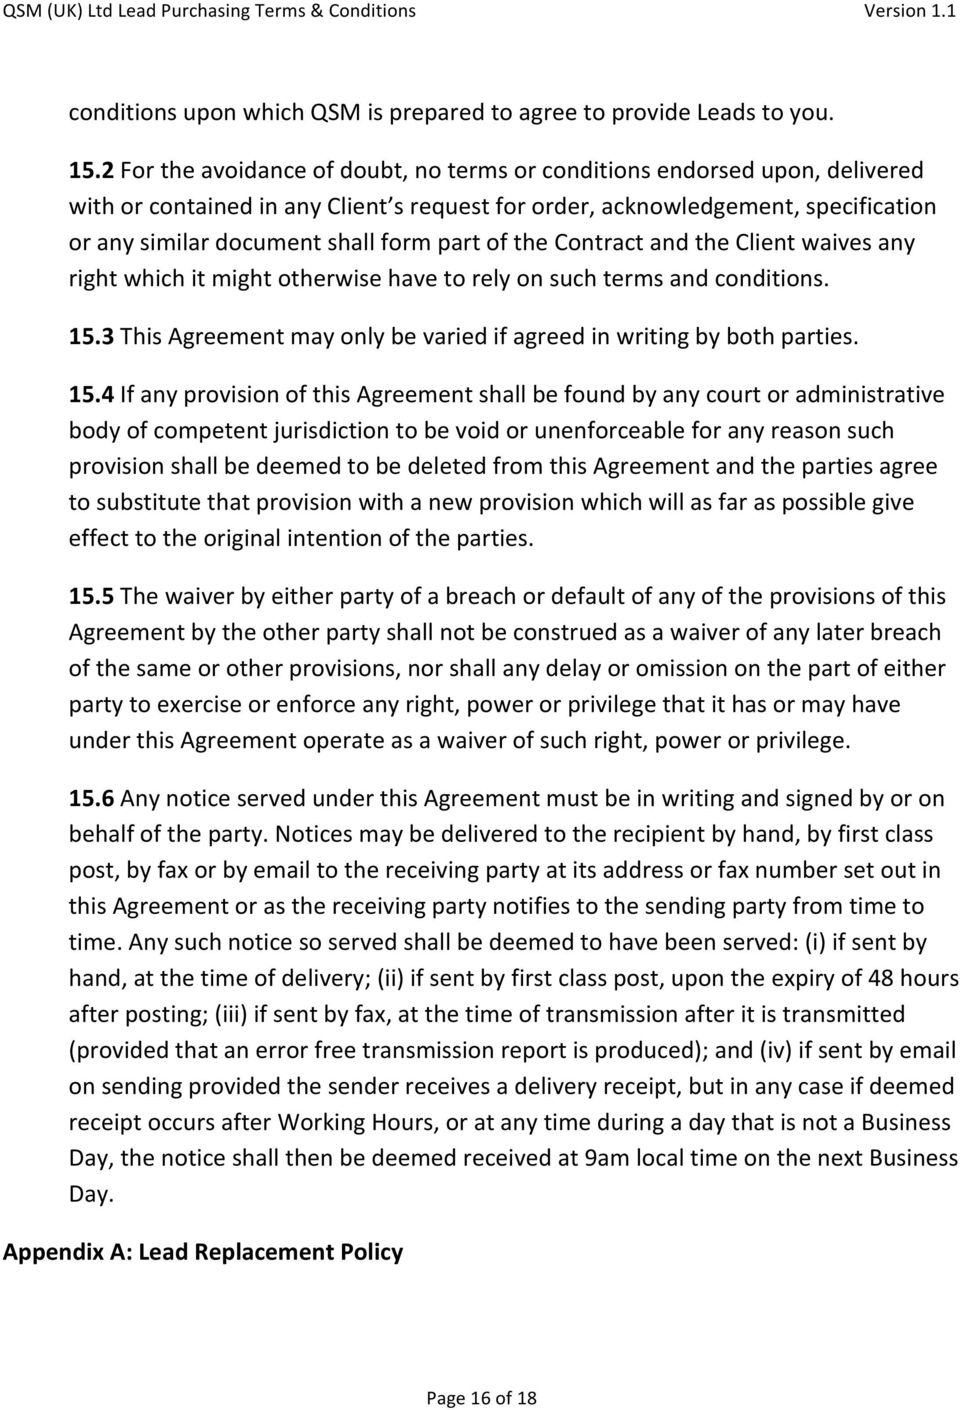 part of the Contract and the Client waives any right which it might otherwise have to rely on such terms and conditions. 15.3 This Agreement may only be varied if agreed in writing by both parties.